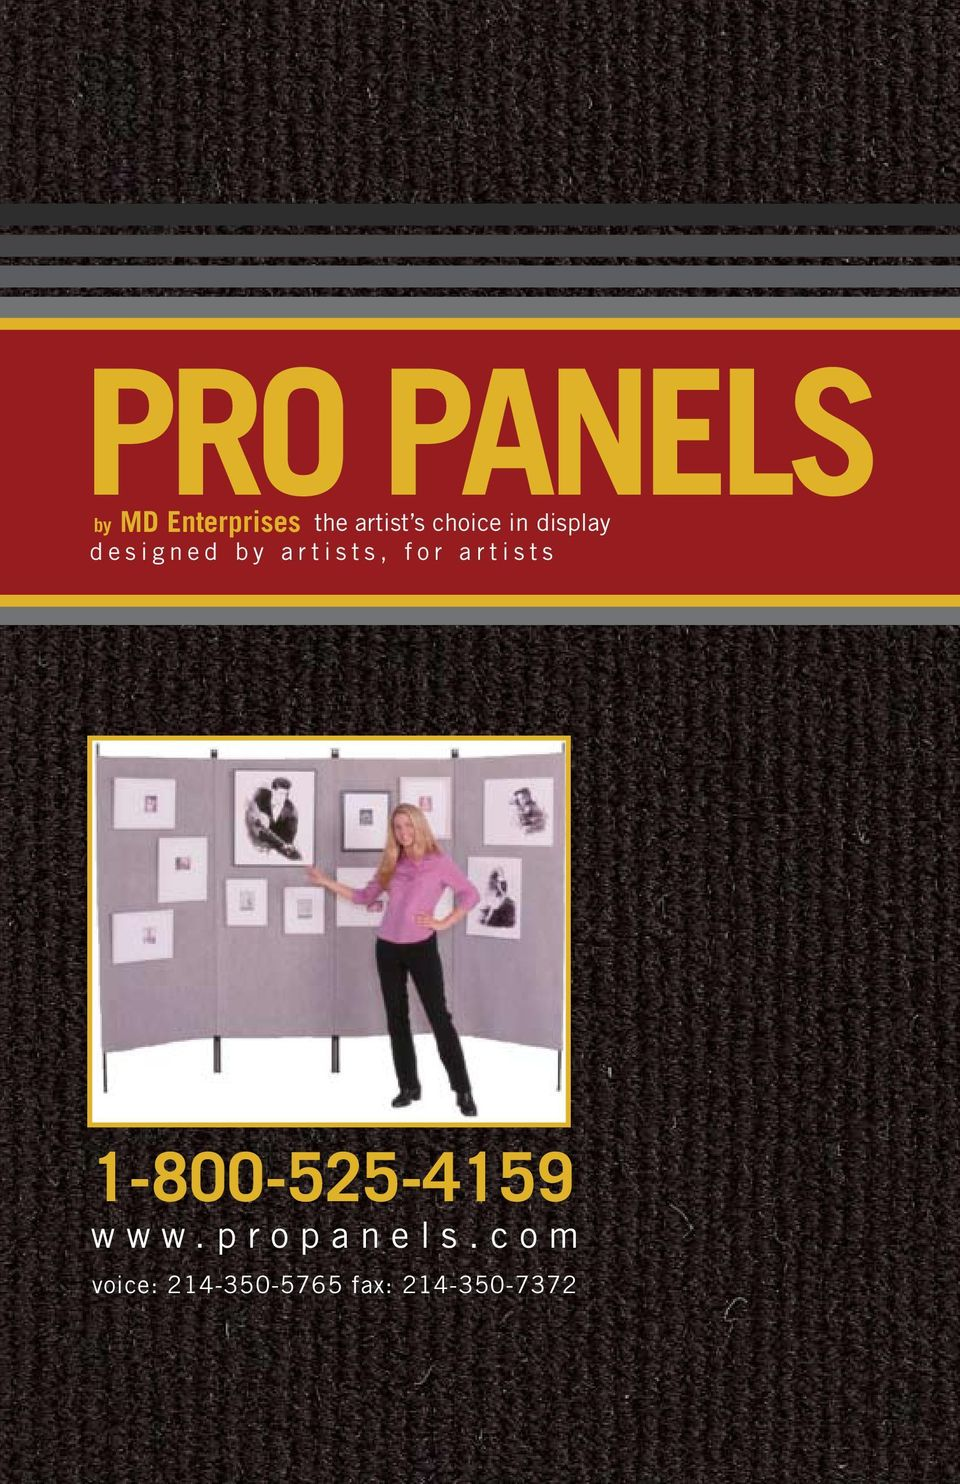 for artists 1-800-525-4159 www.propanels.